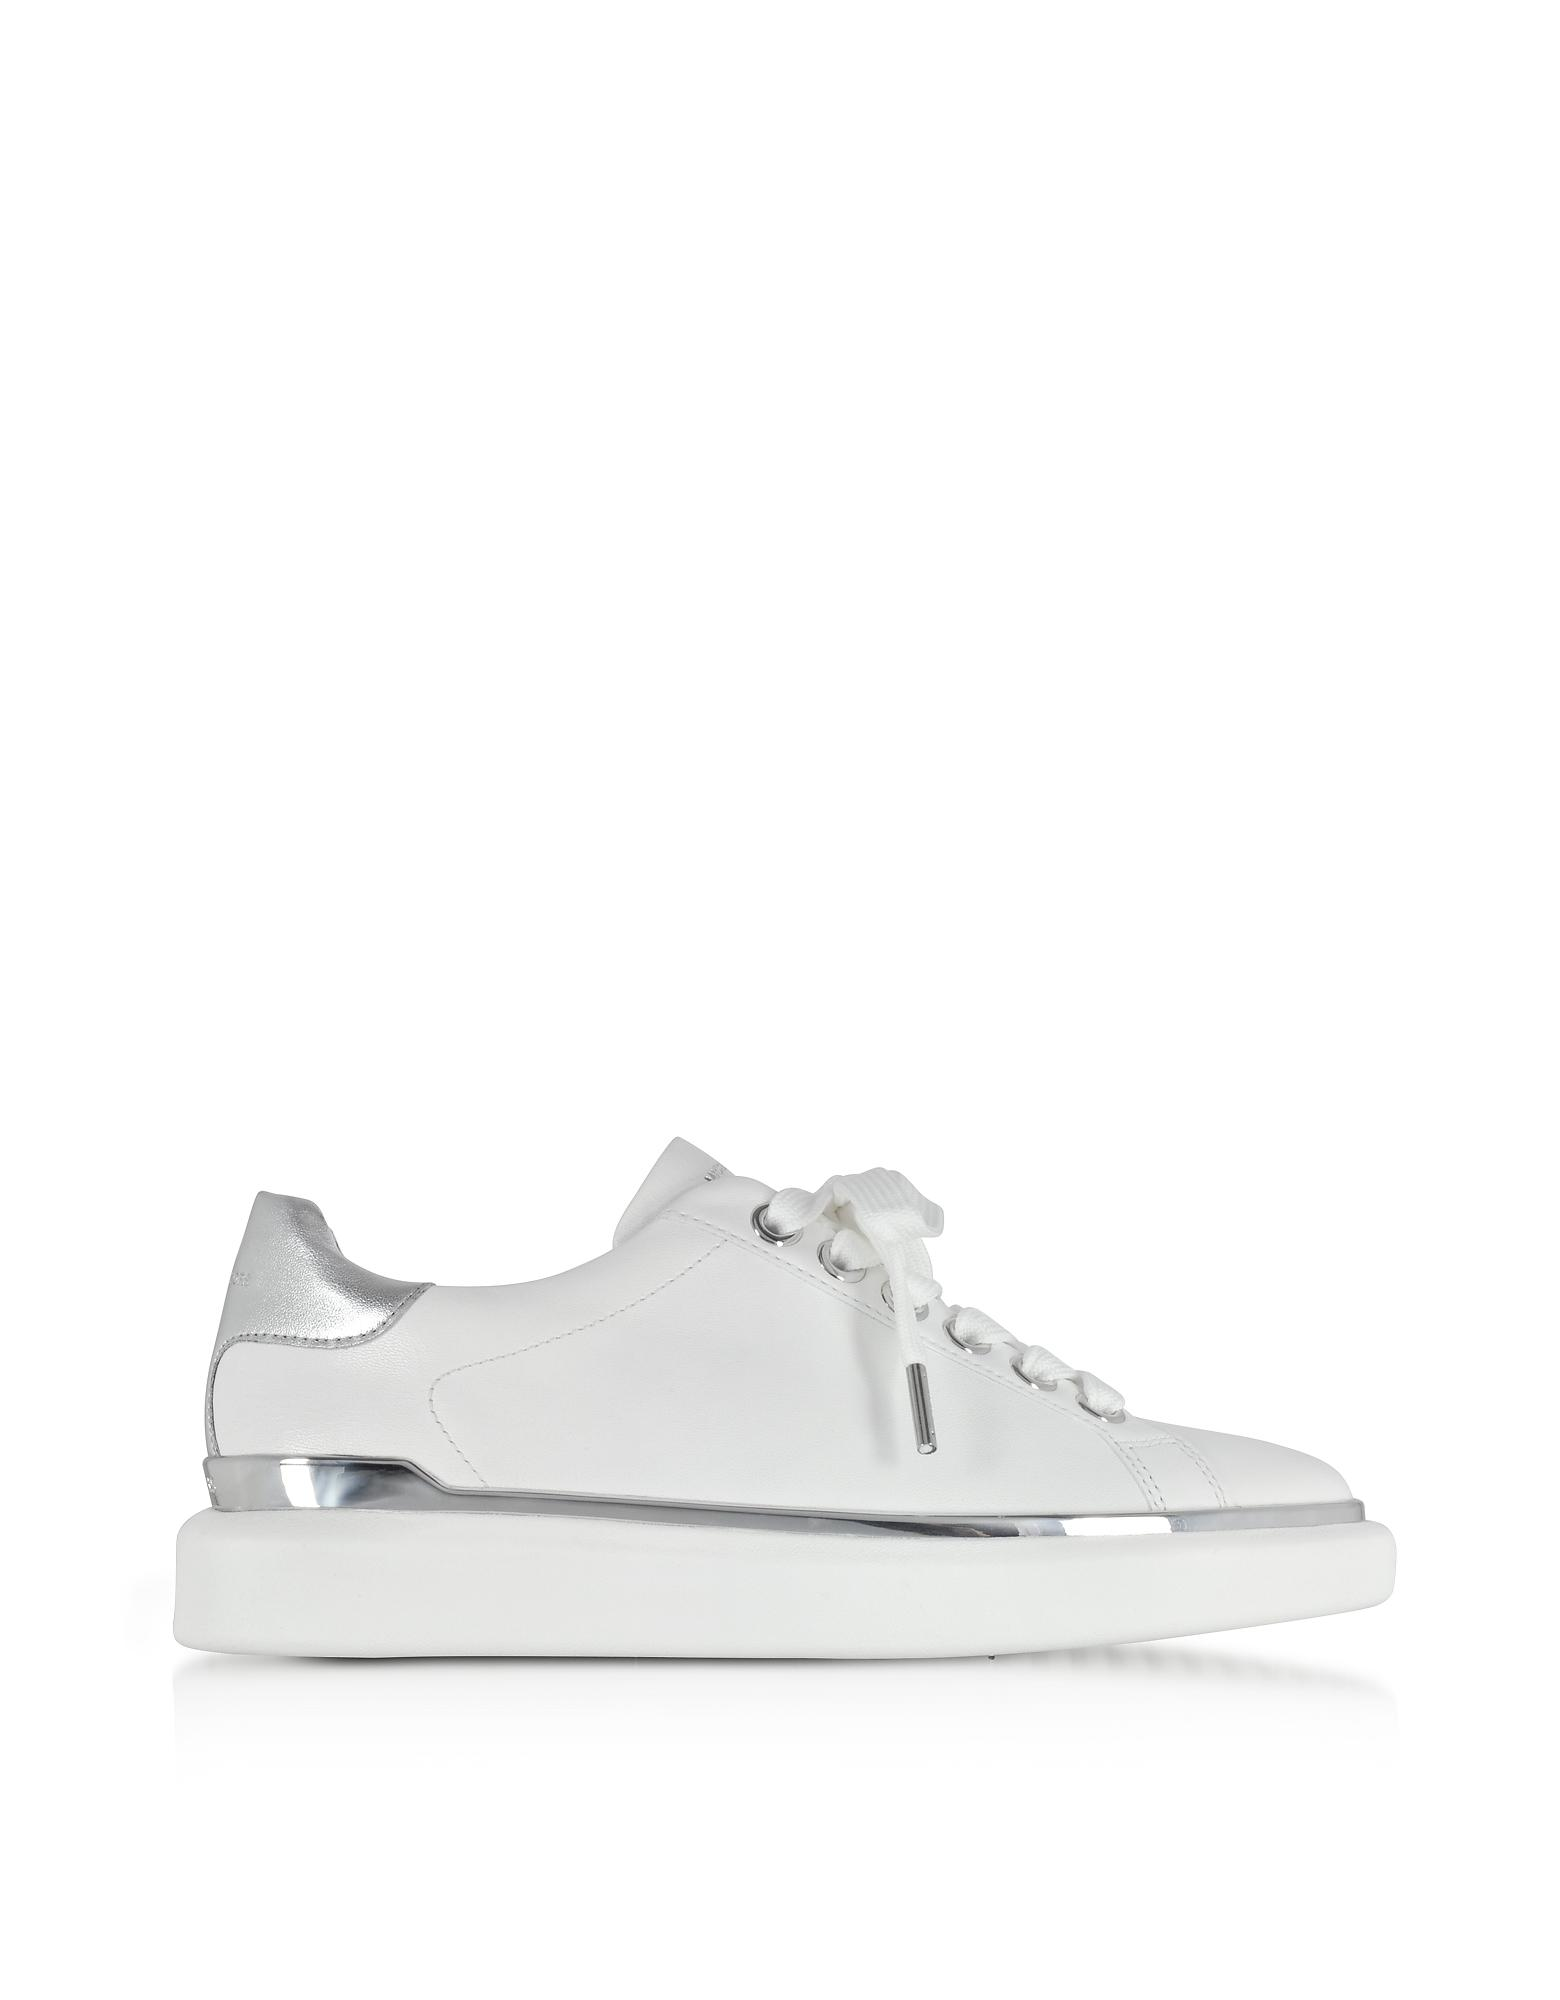 e6a2228527c Michael Kors Max Optic White Nappa Leather Lace Up Sneakers in White ...